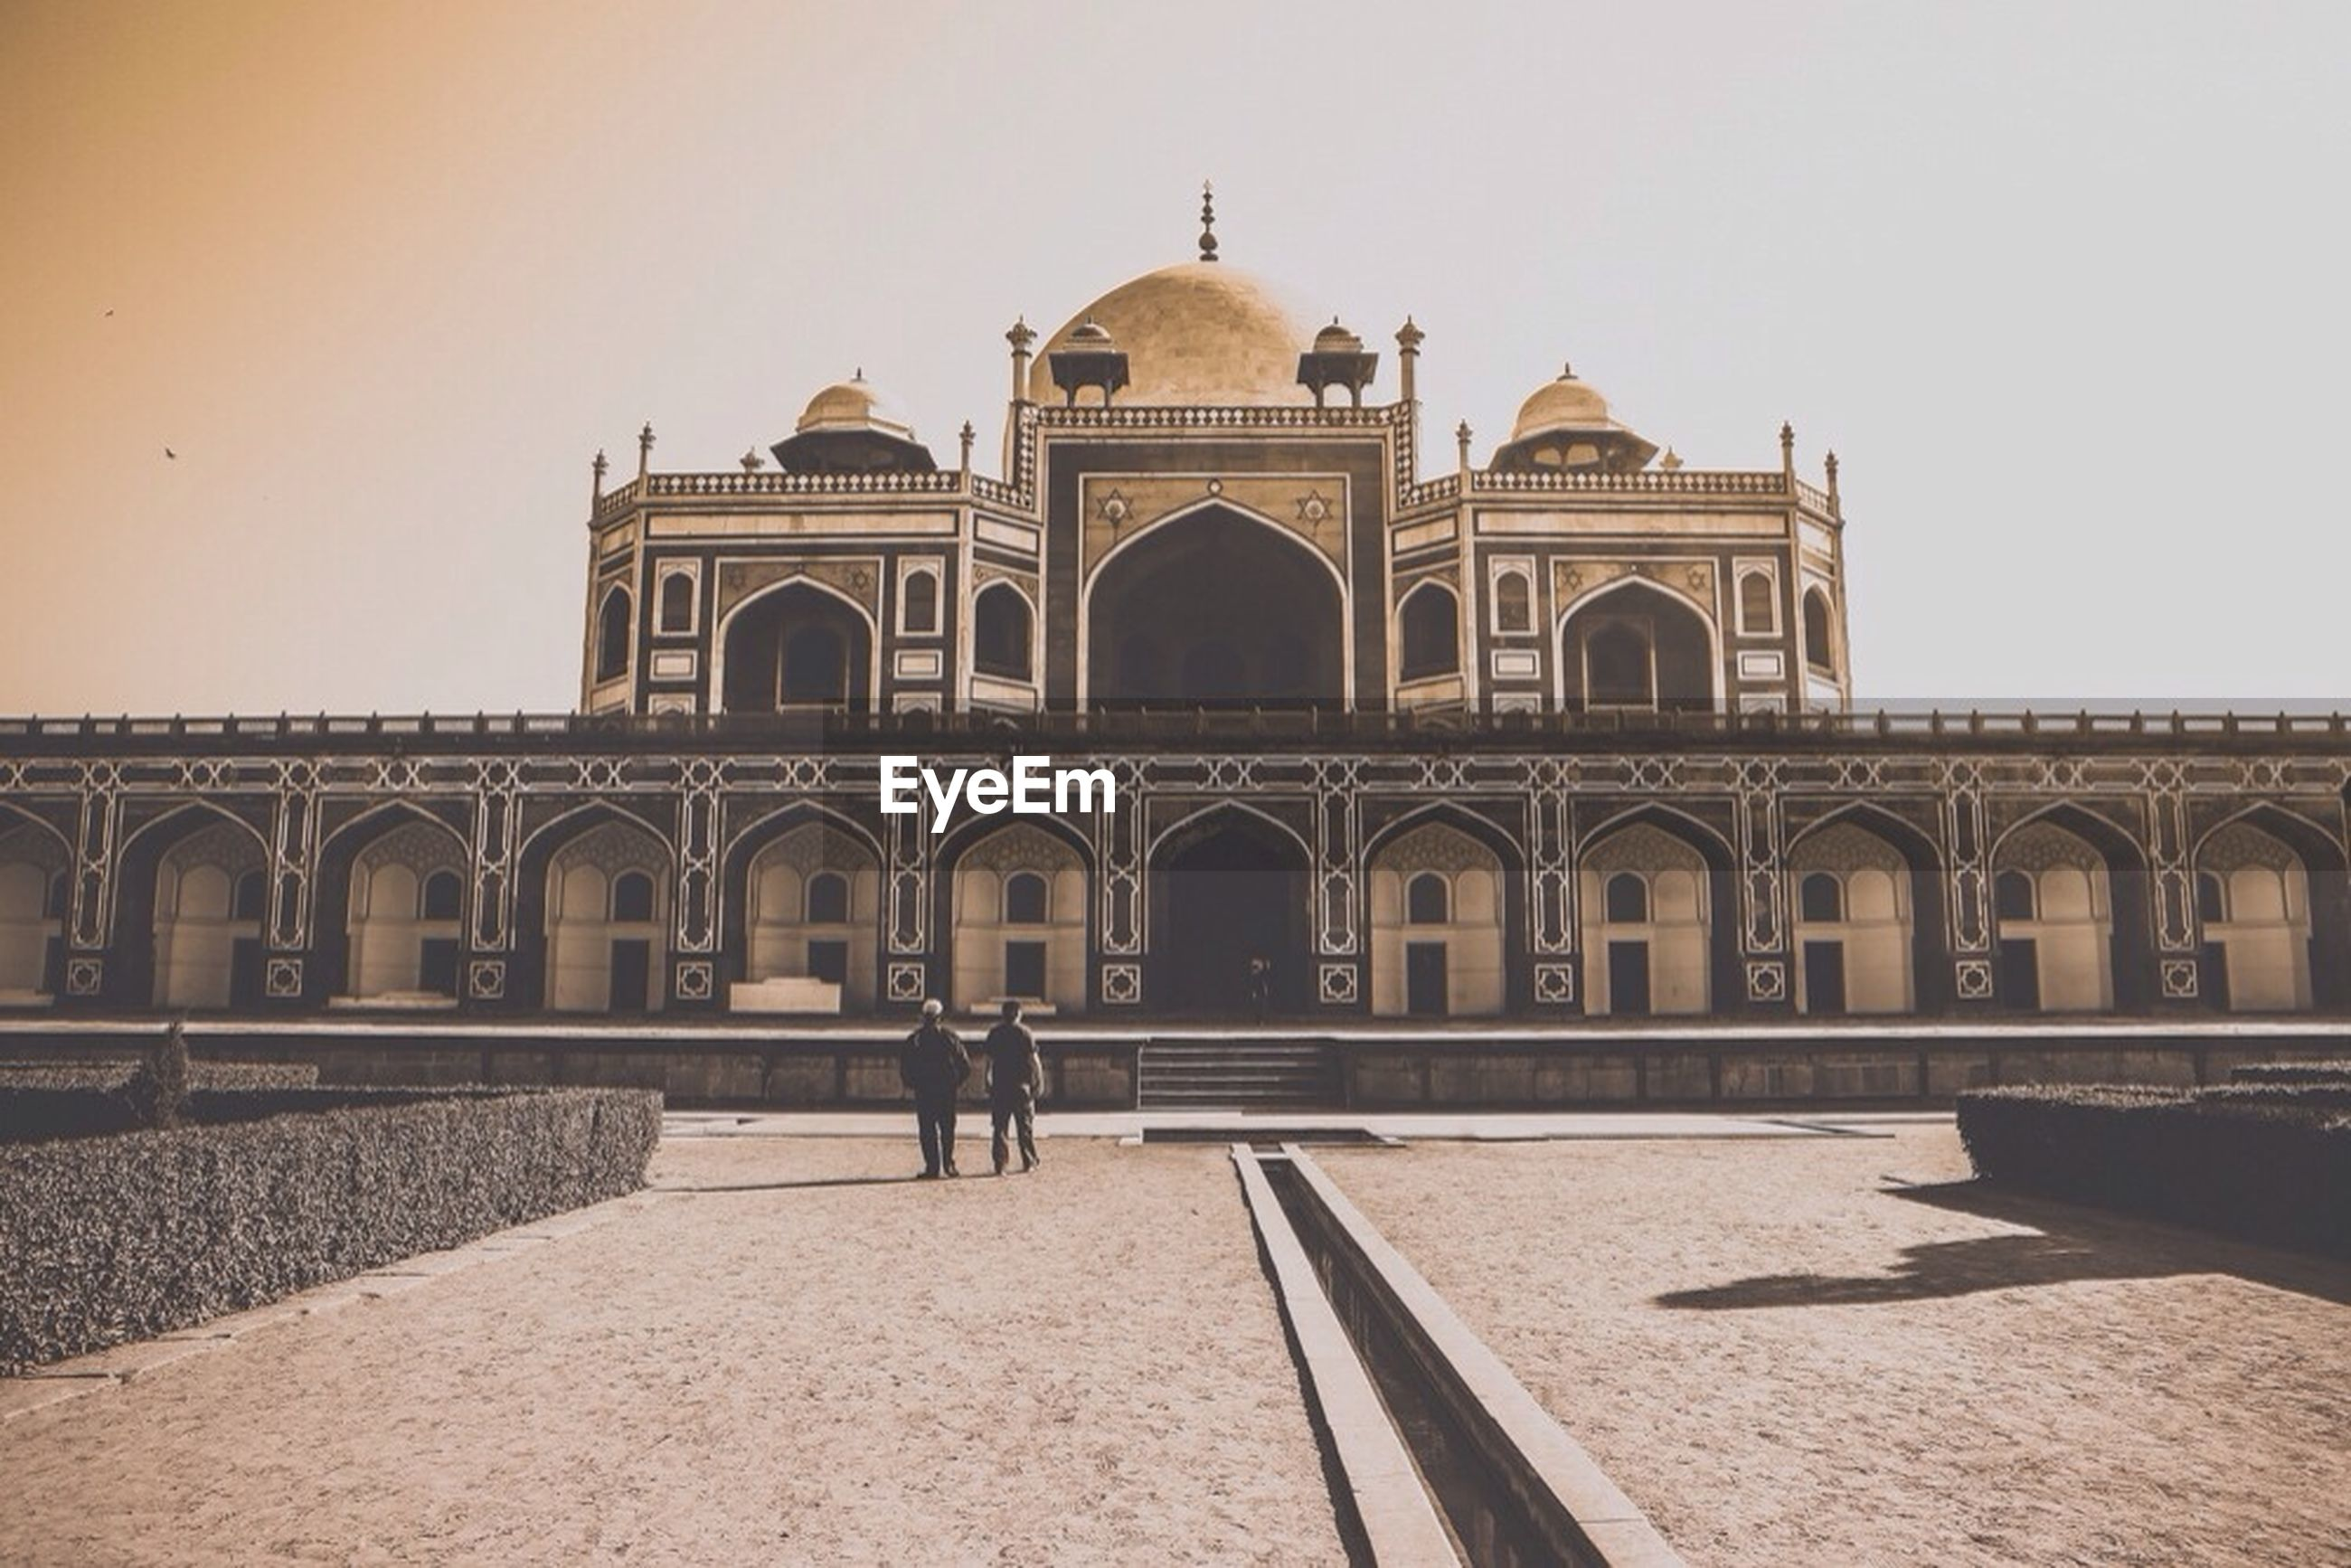 Exterior of humayuns tomb against clear sky